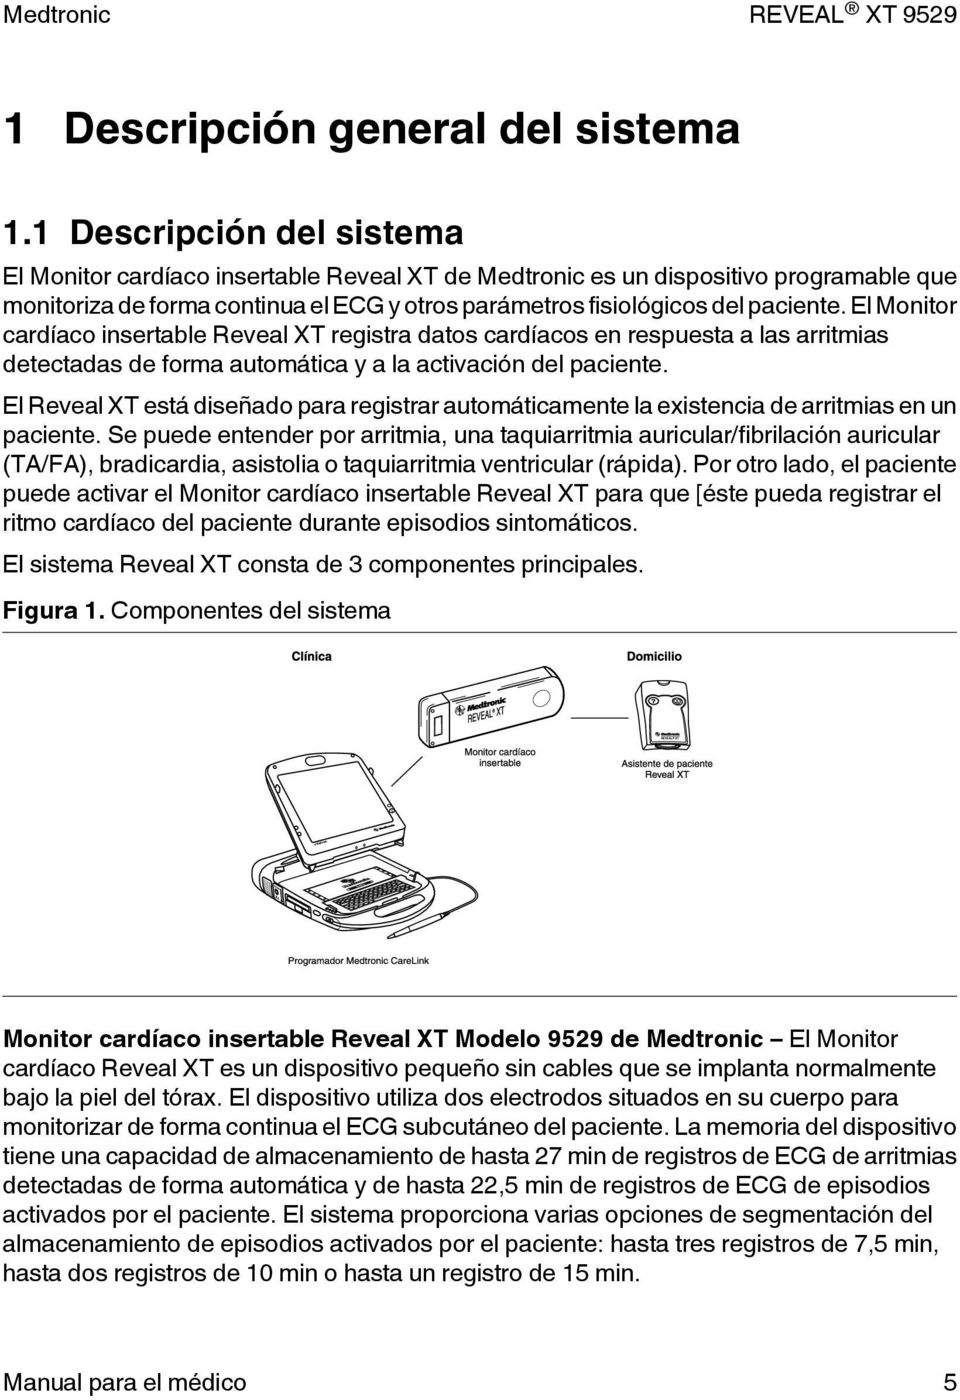 REVEAL XT Monitor cardíaco insertable. Manual para el médico - PDF